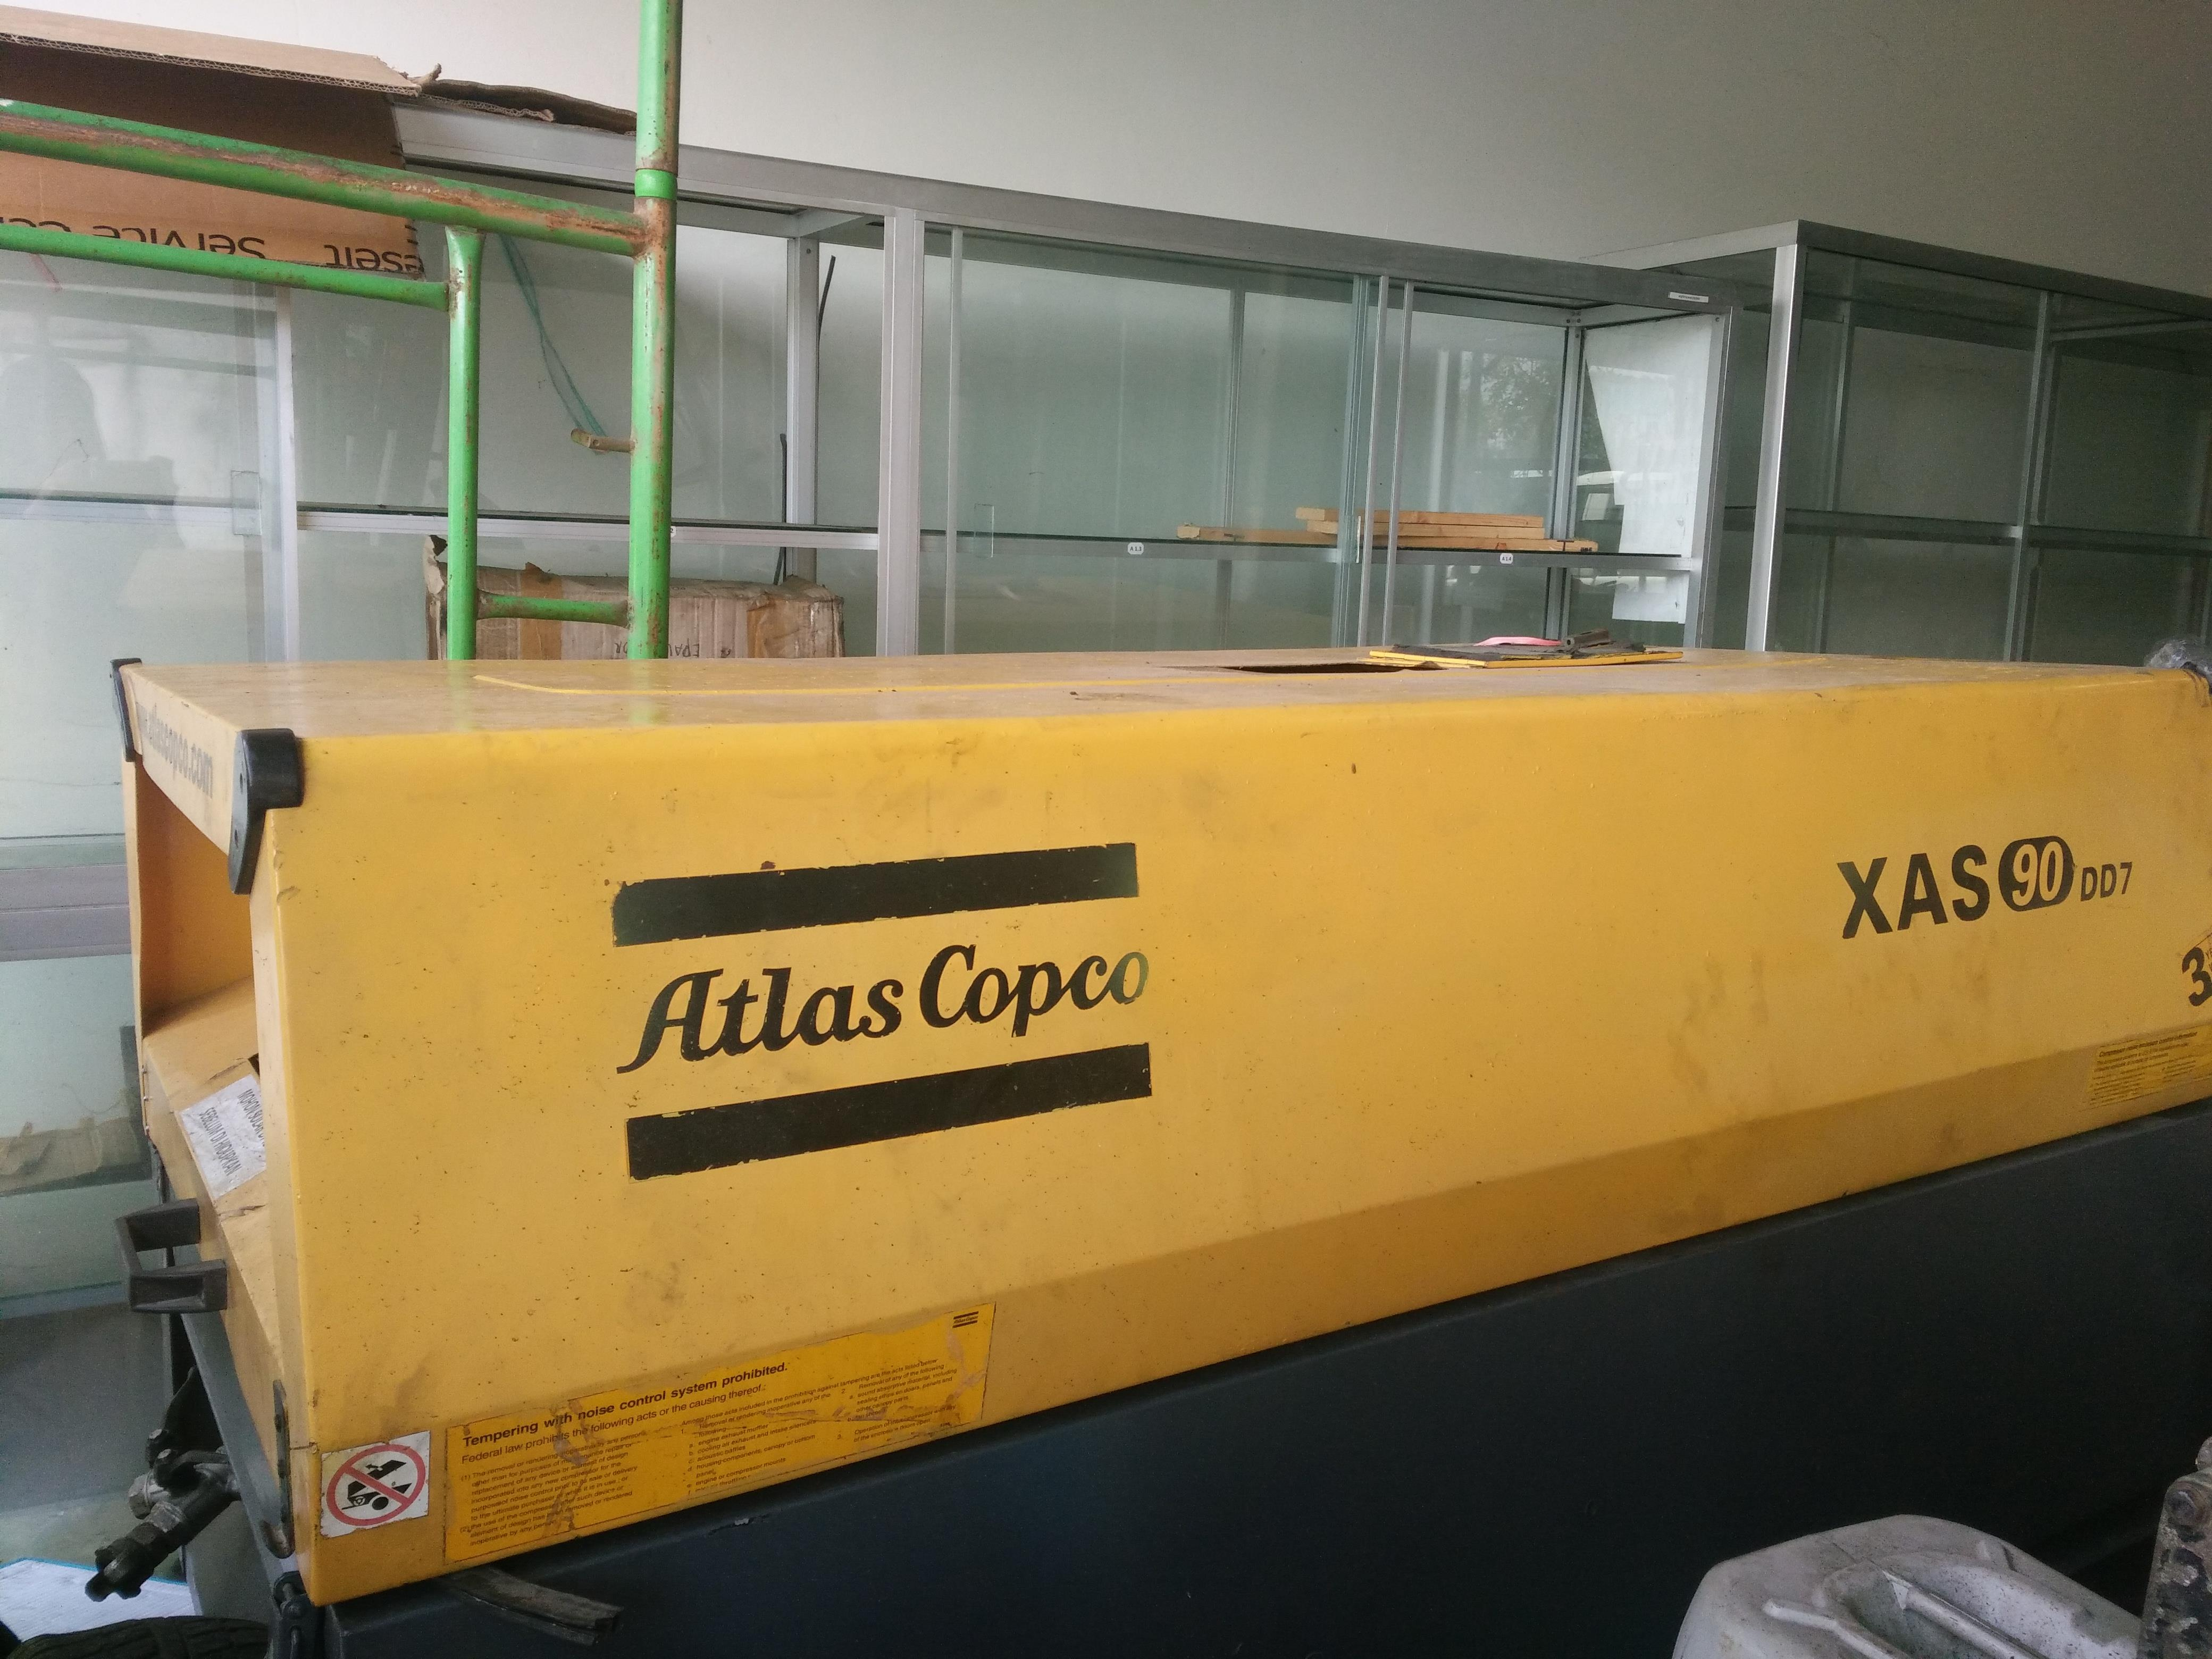 Sell Atlas Copco Air Compressor Xas 90 Dd7 from Indonesia by PT  TECONINDO,Cheap Price